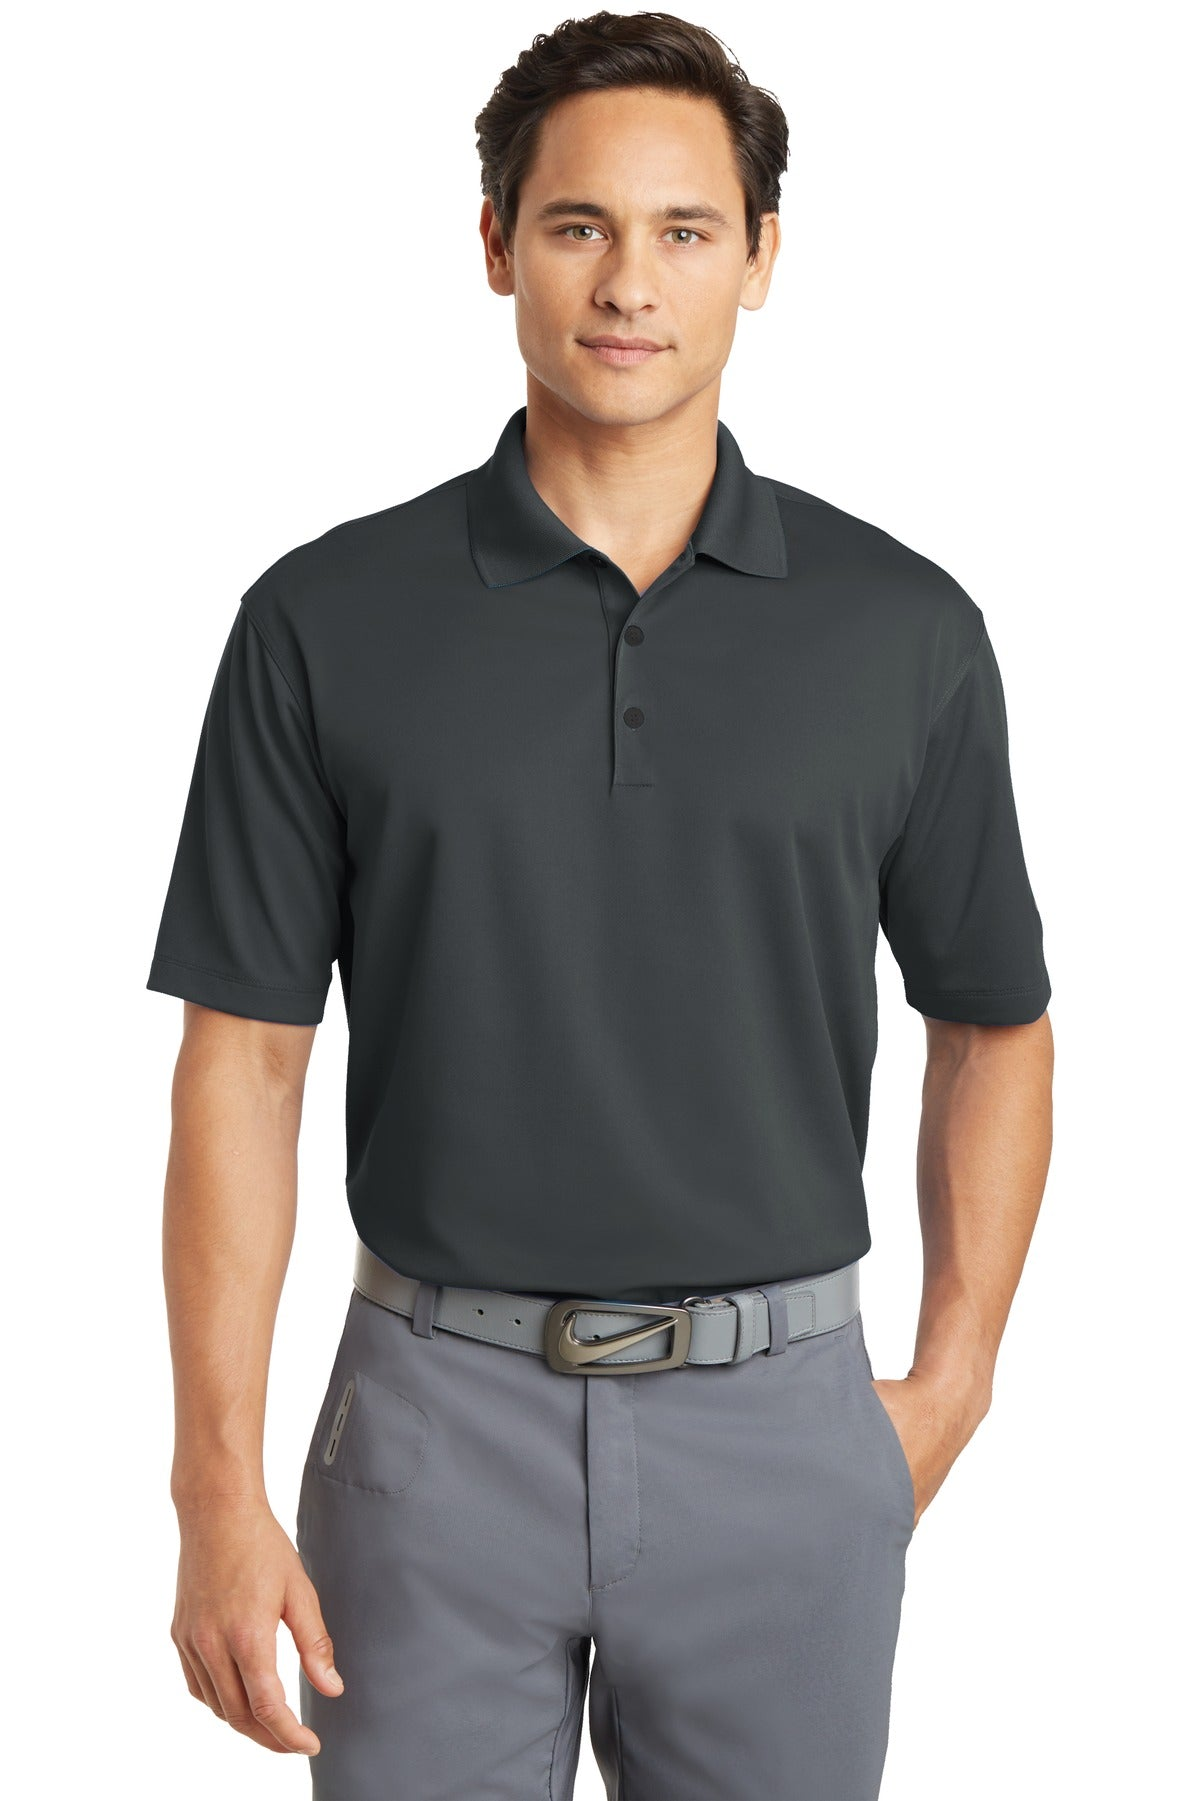 Anthracite Nike Dri-FIT Micro Pique Polo.